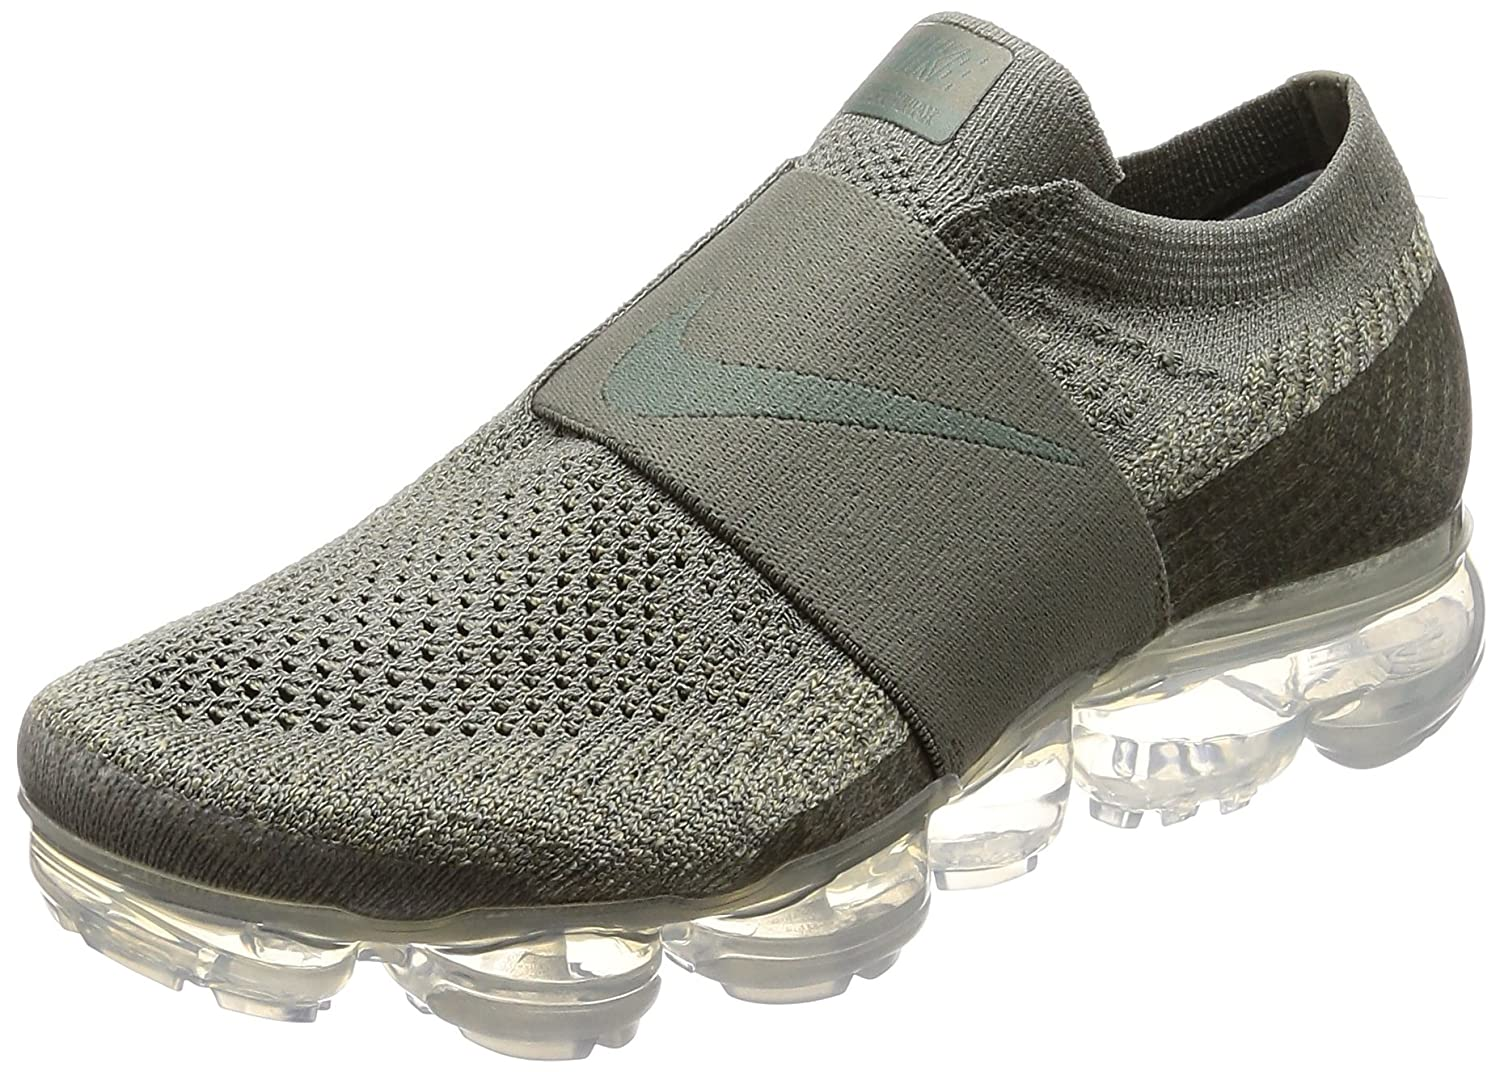 Nike Womens Air Vapormax Flyknit Moc Running Shoe